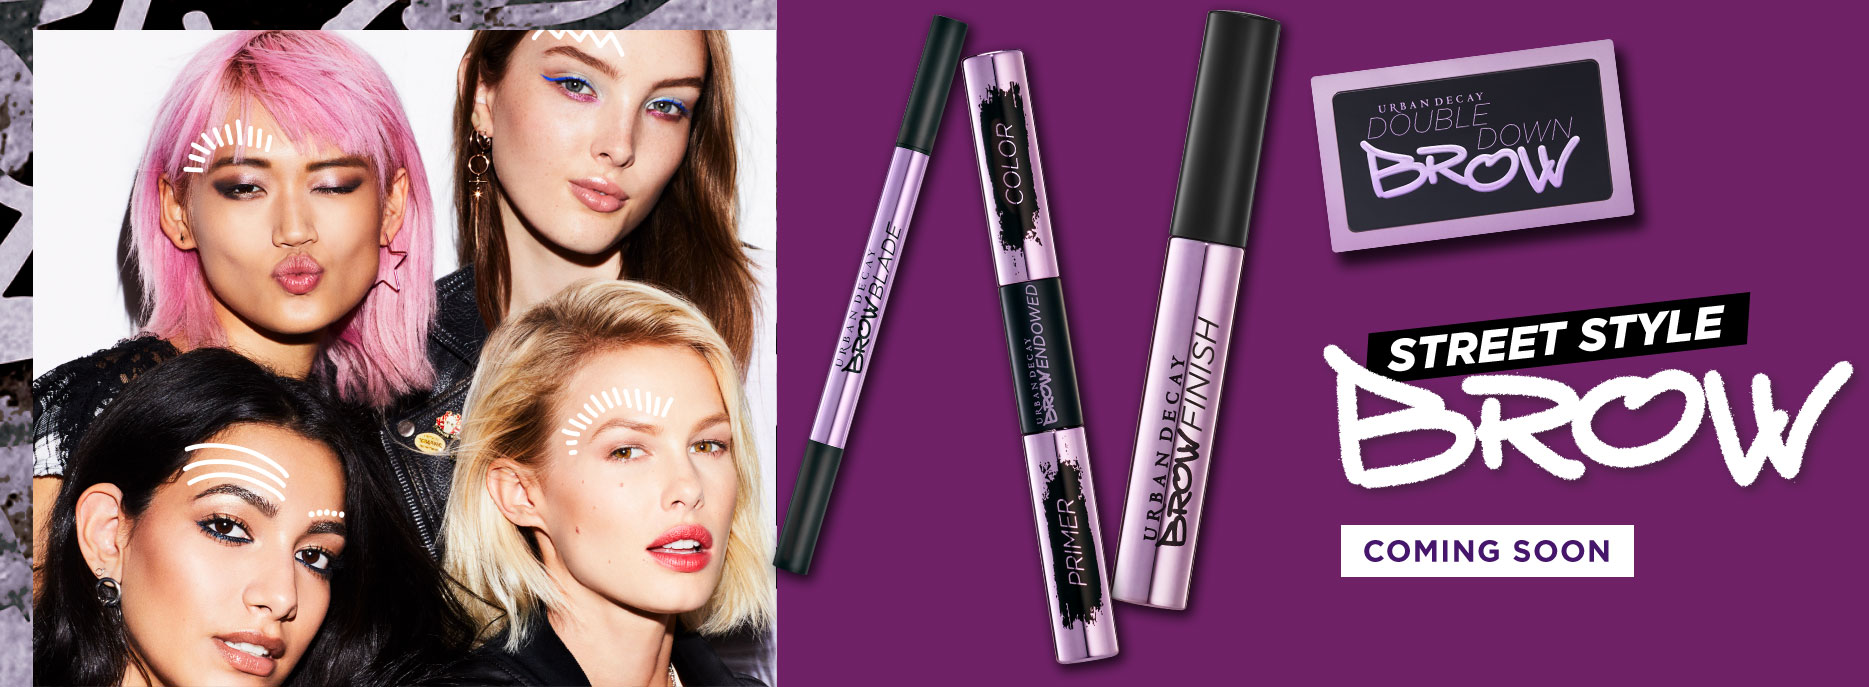 Urban Decay | Street Style Brow